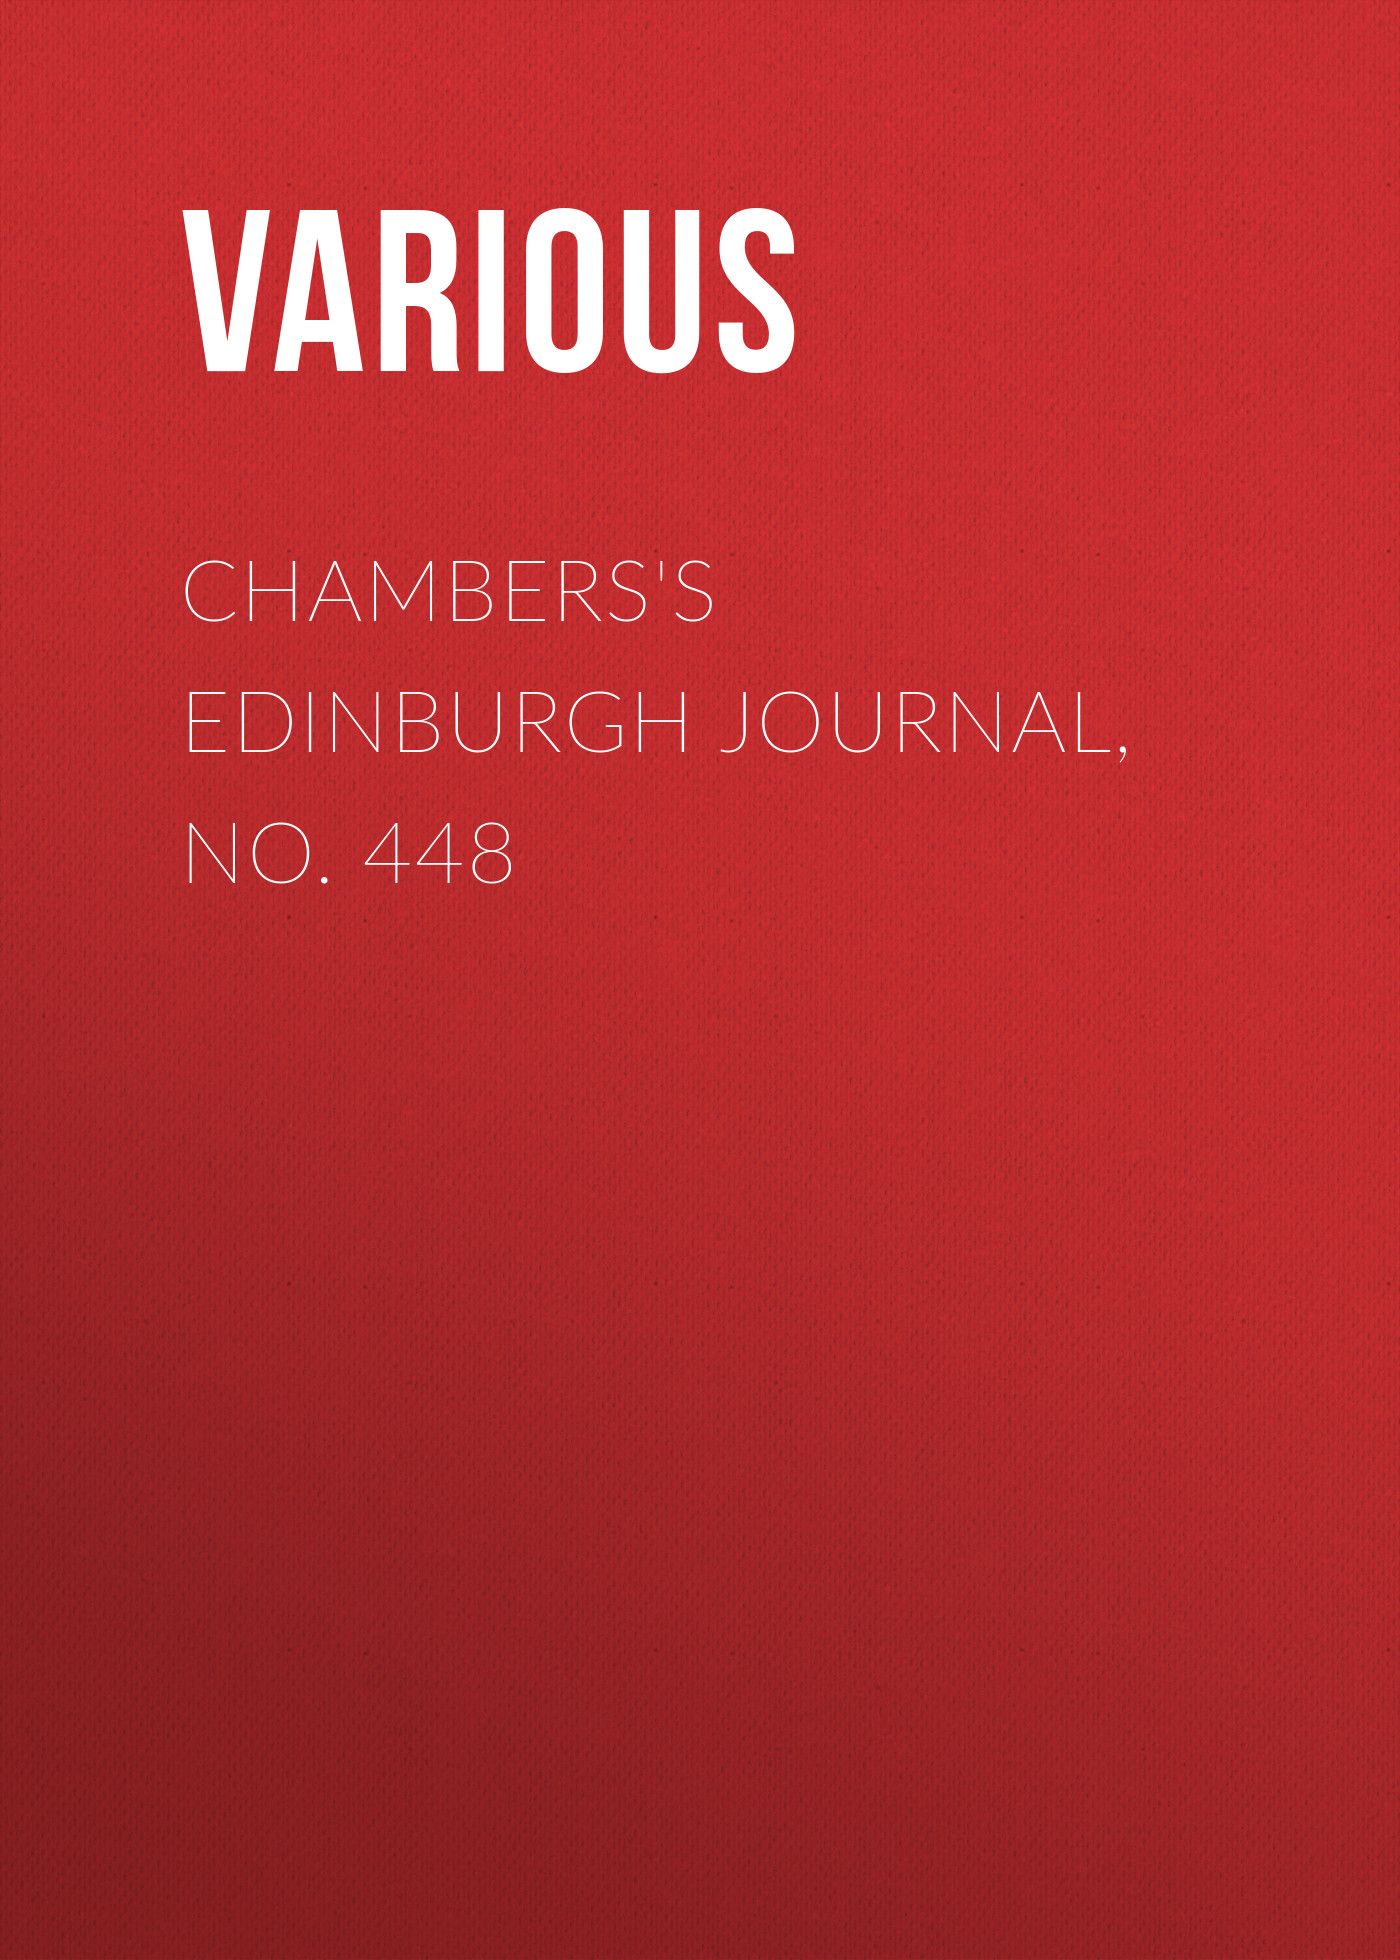 Various Chambers's Edinburgh Journal, No. 448 various chambers s edinburgh journal no 428